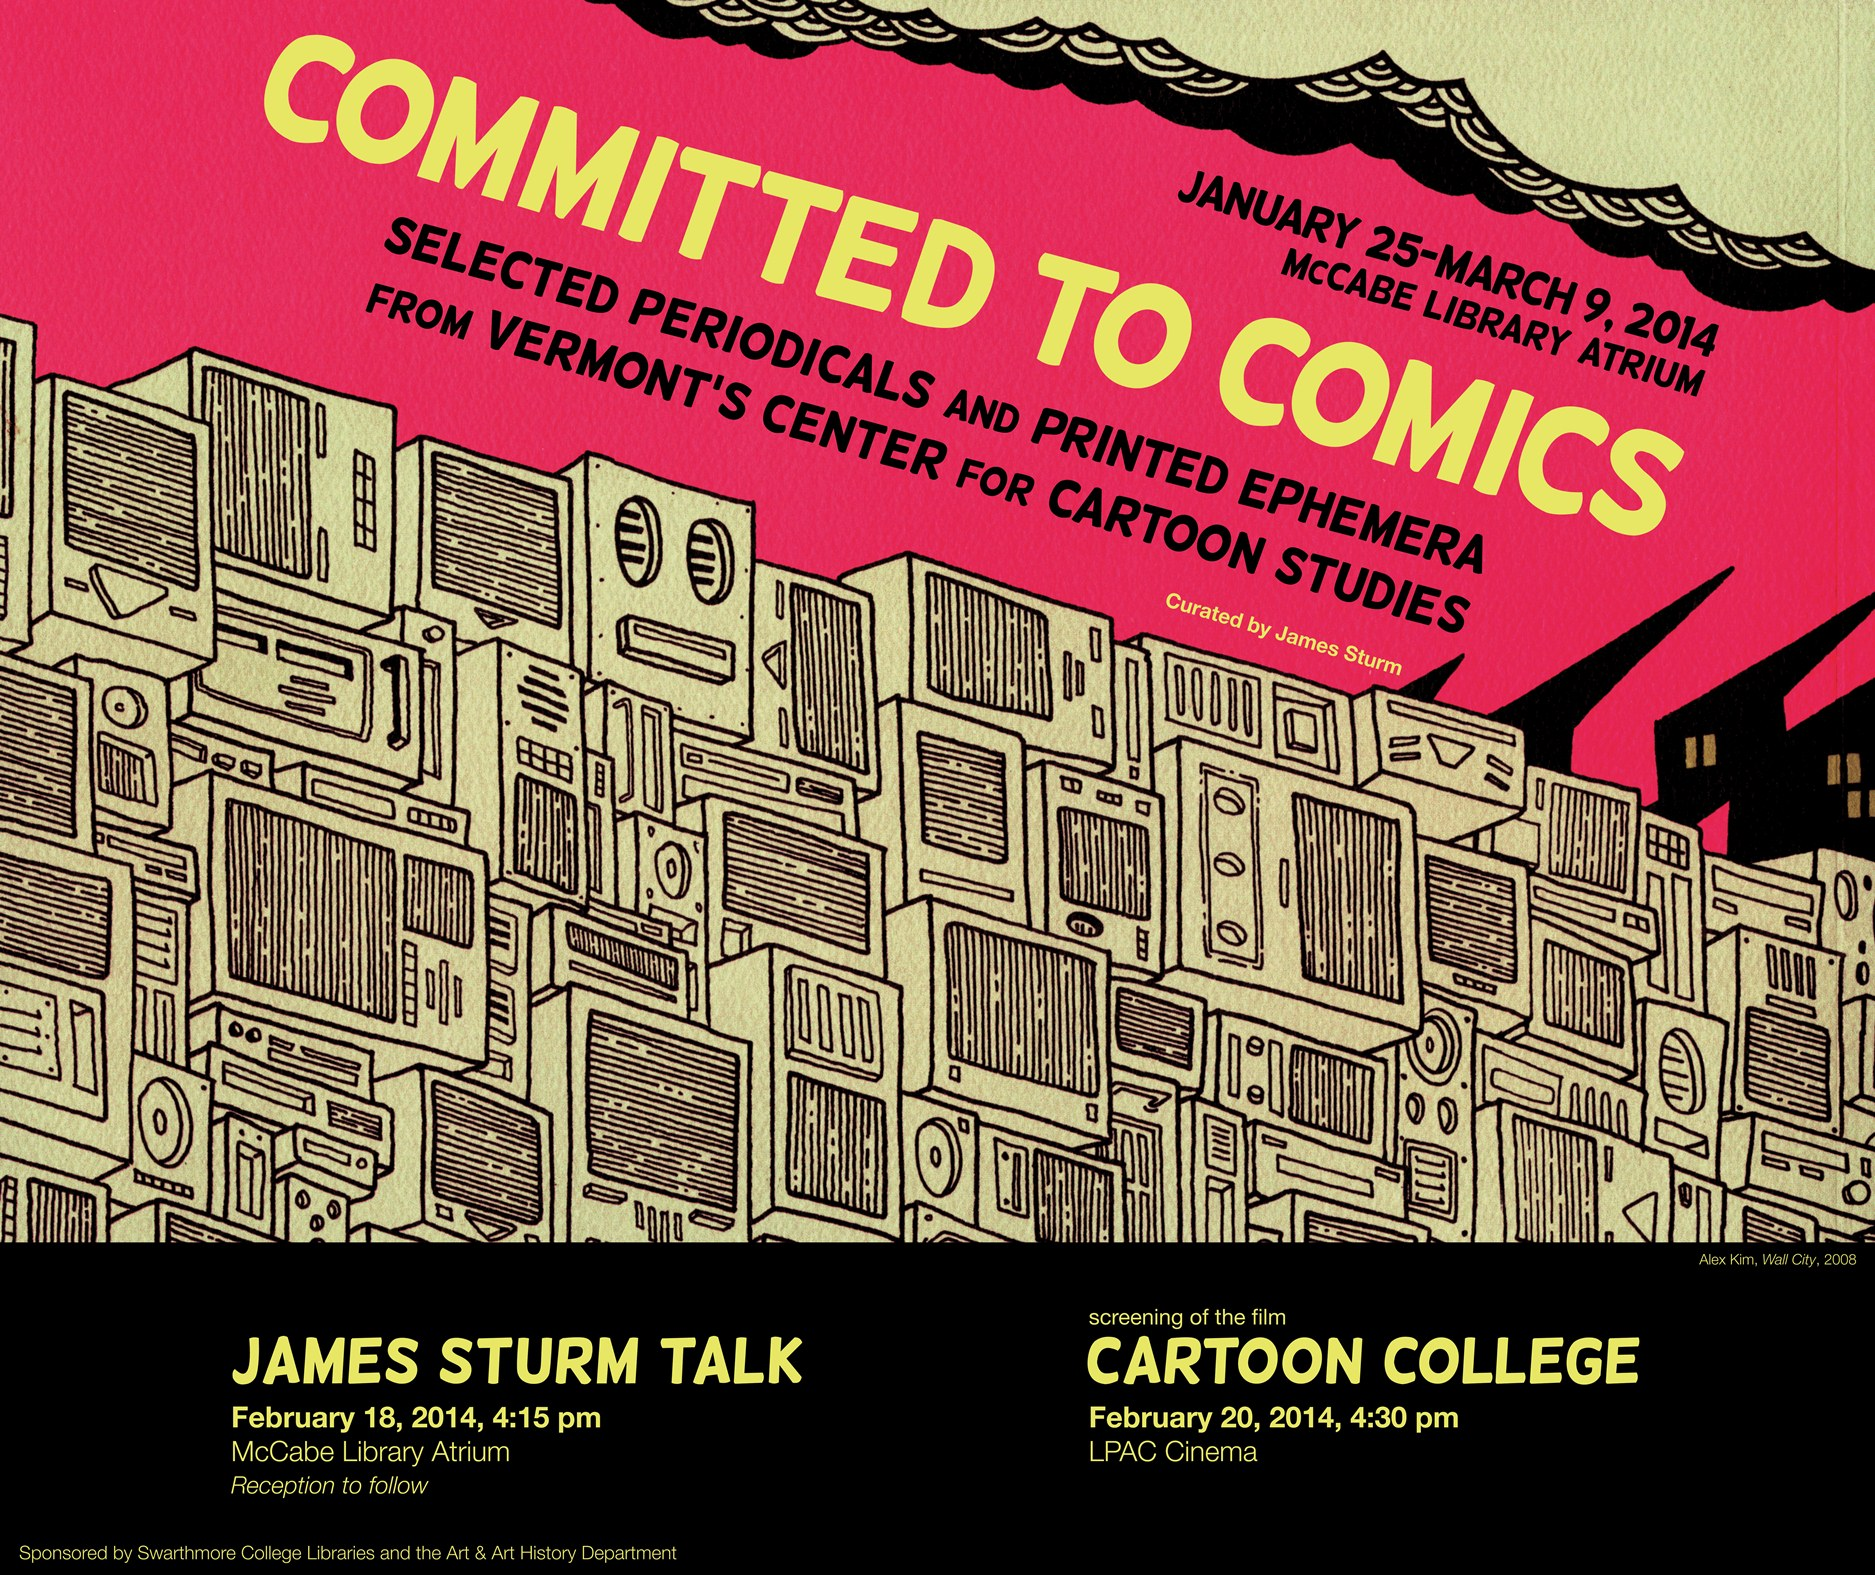 Exhibition poster for Committed to Comics (Swarthmore)